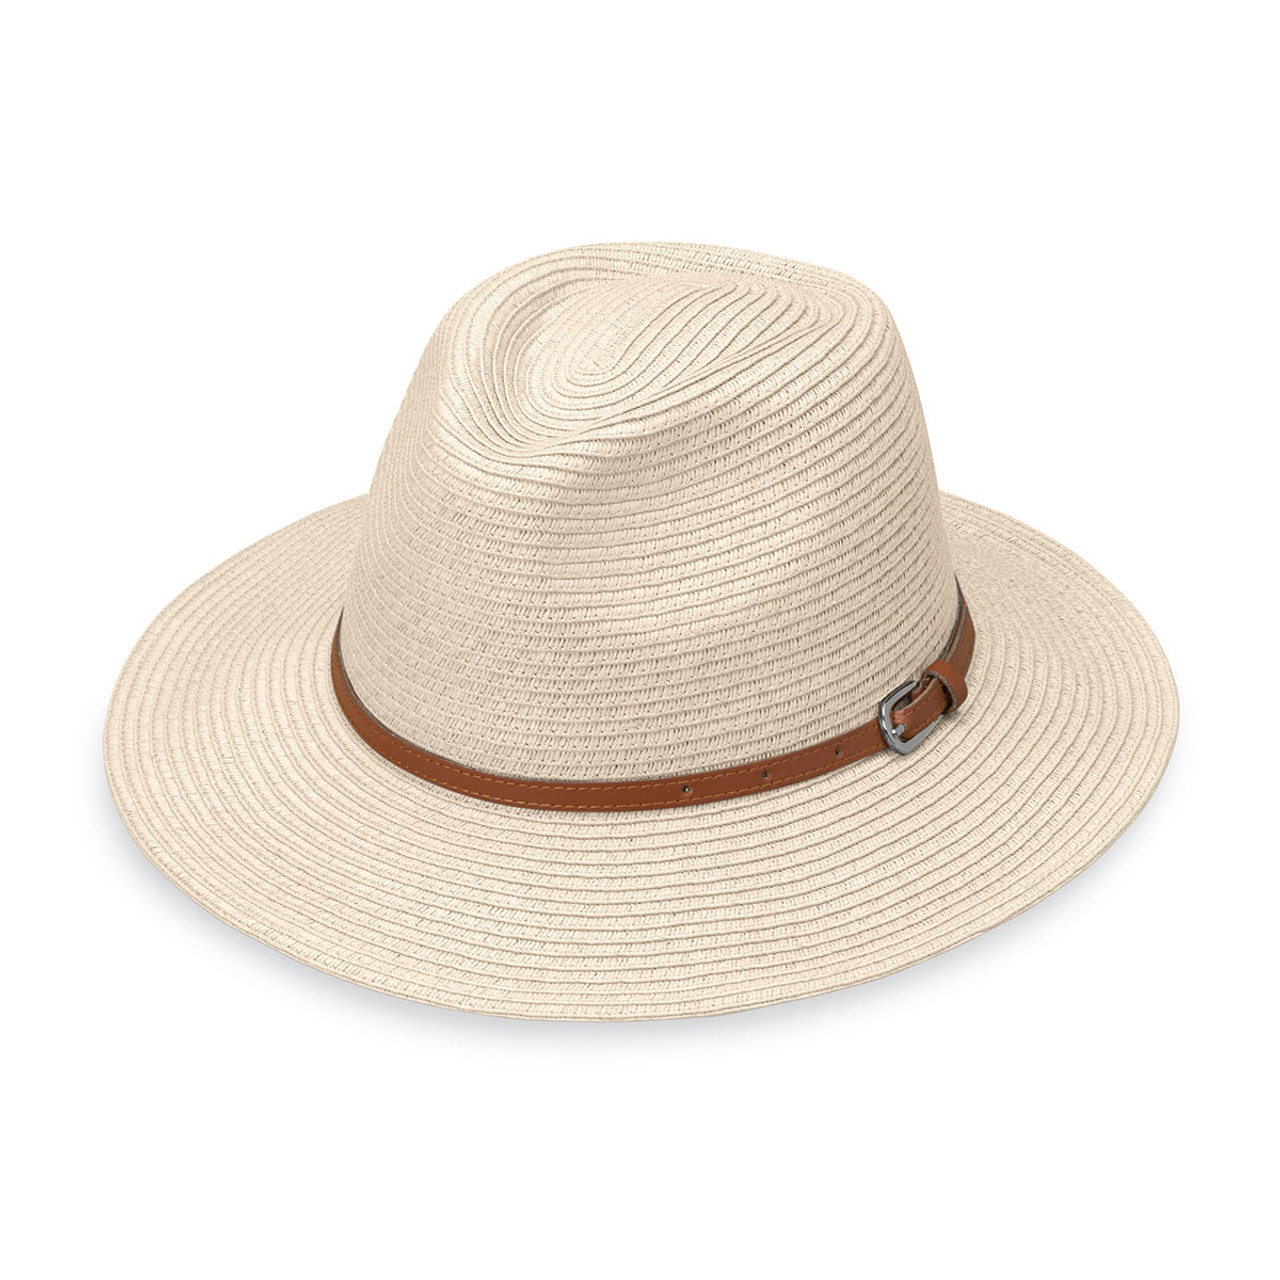 29f147a1 Women's Wallaroo Naples Hat | Fedora Style Hat